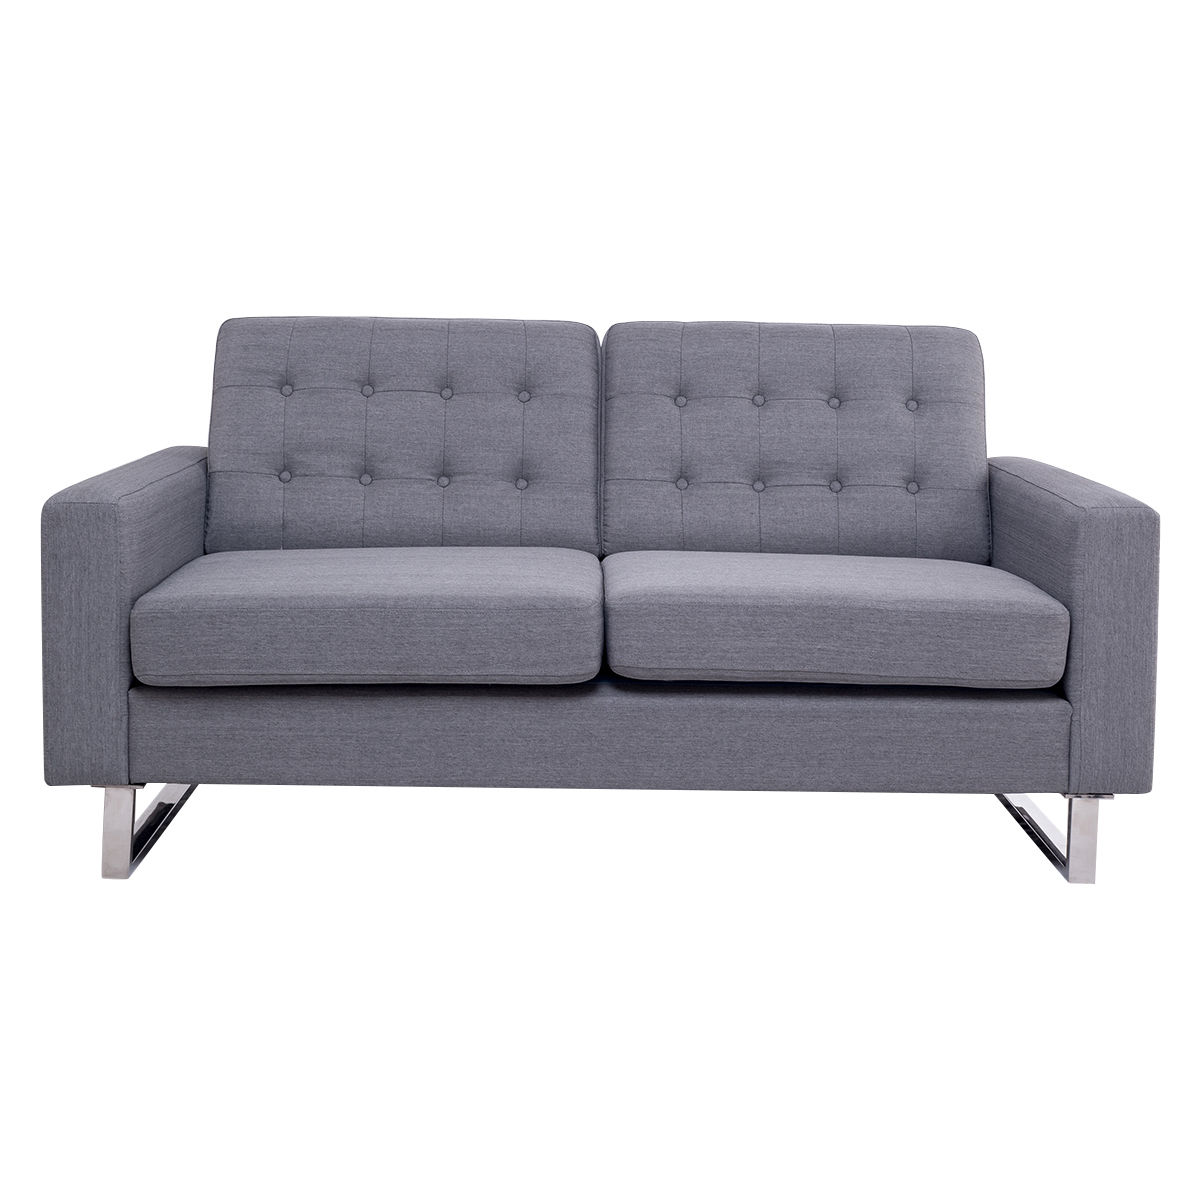 Giantex 2 Seat Sofa Couch Home Office Modern Loveseat Fabric Upholstered  Tufted Luxury Sofas Living Room Furniture HW56261 In Living Room Sofas From  ...